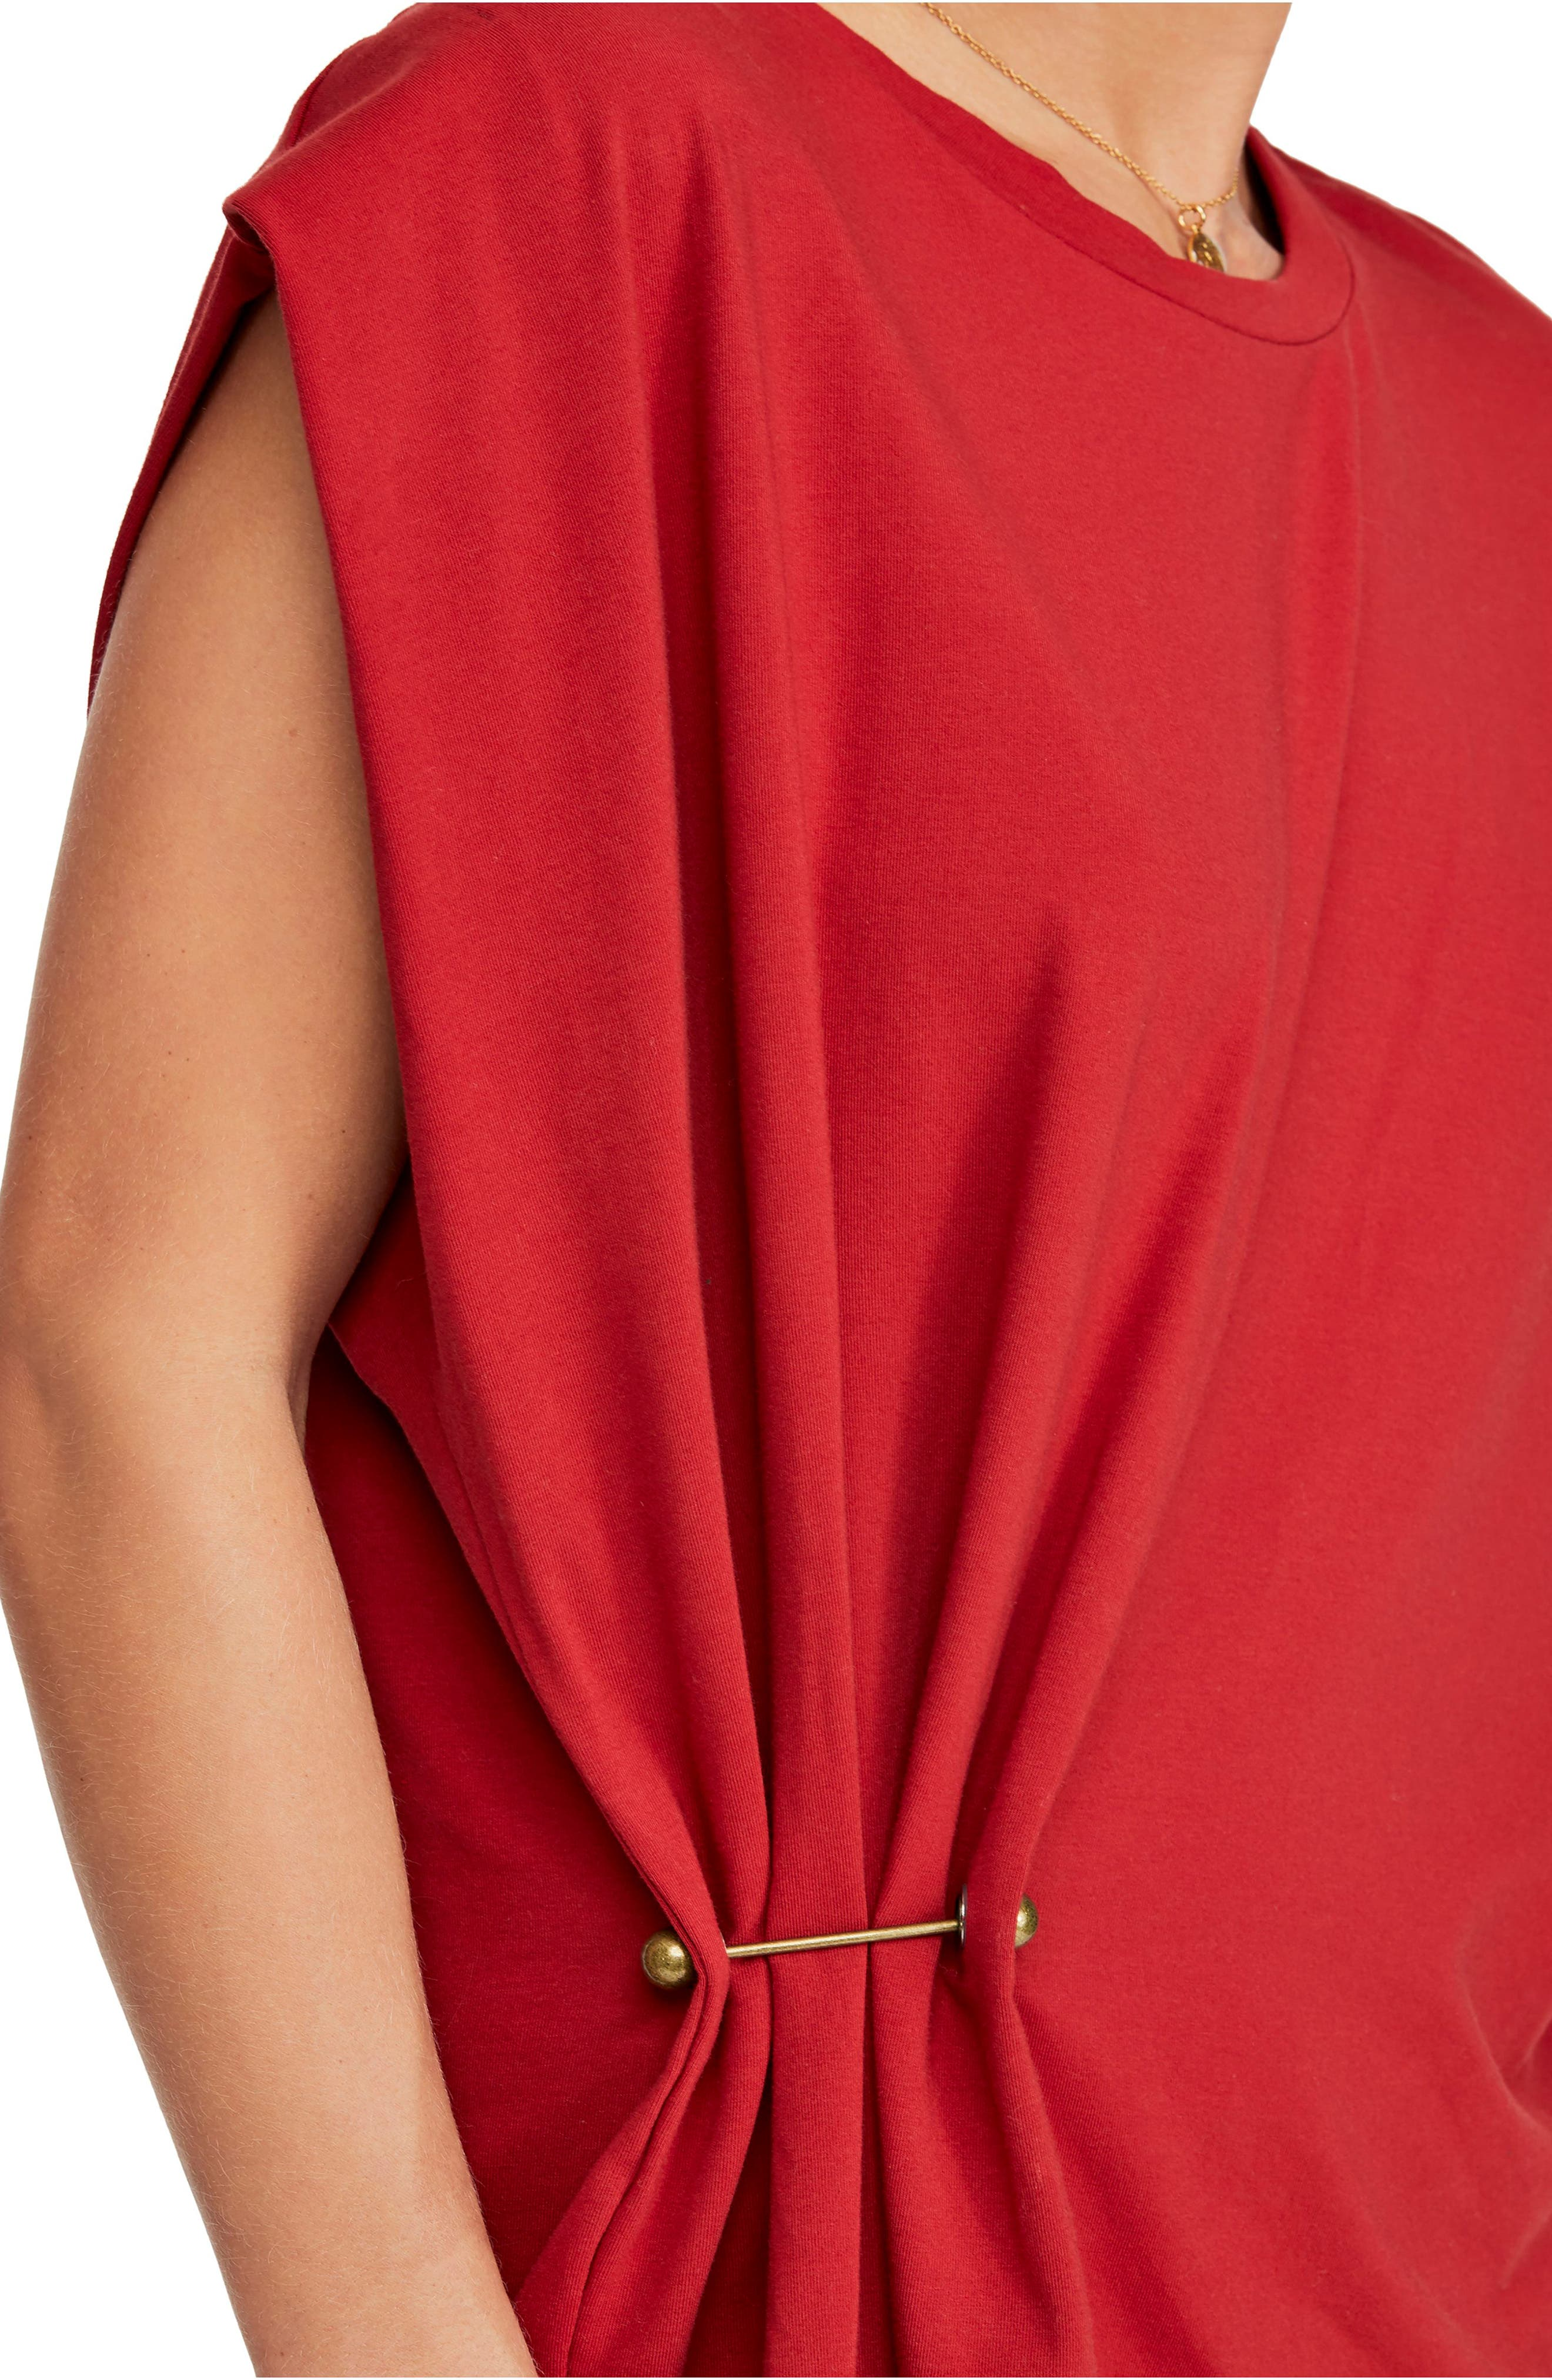 FREE PEOPLE, Bianca Shift Dress, Alternate thumbnail 5, color, RED